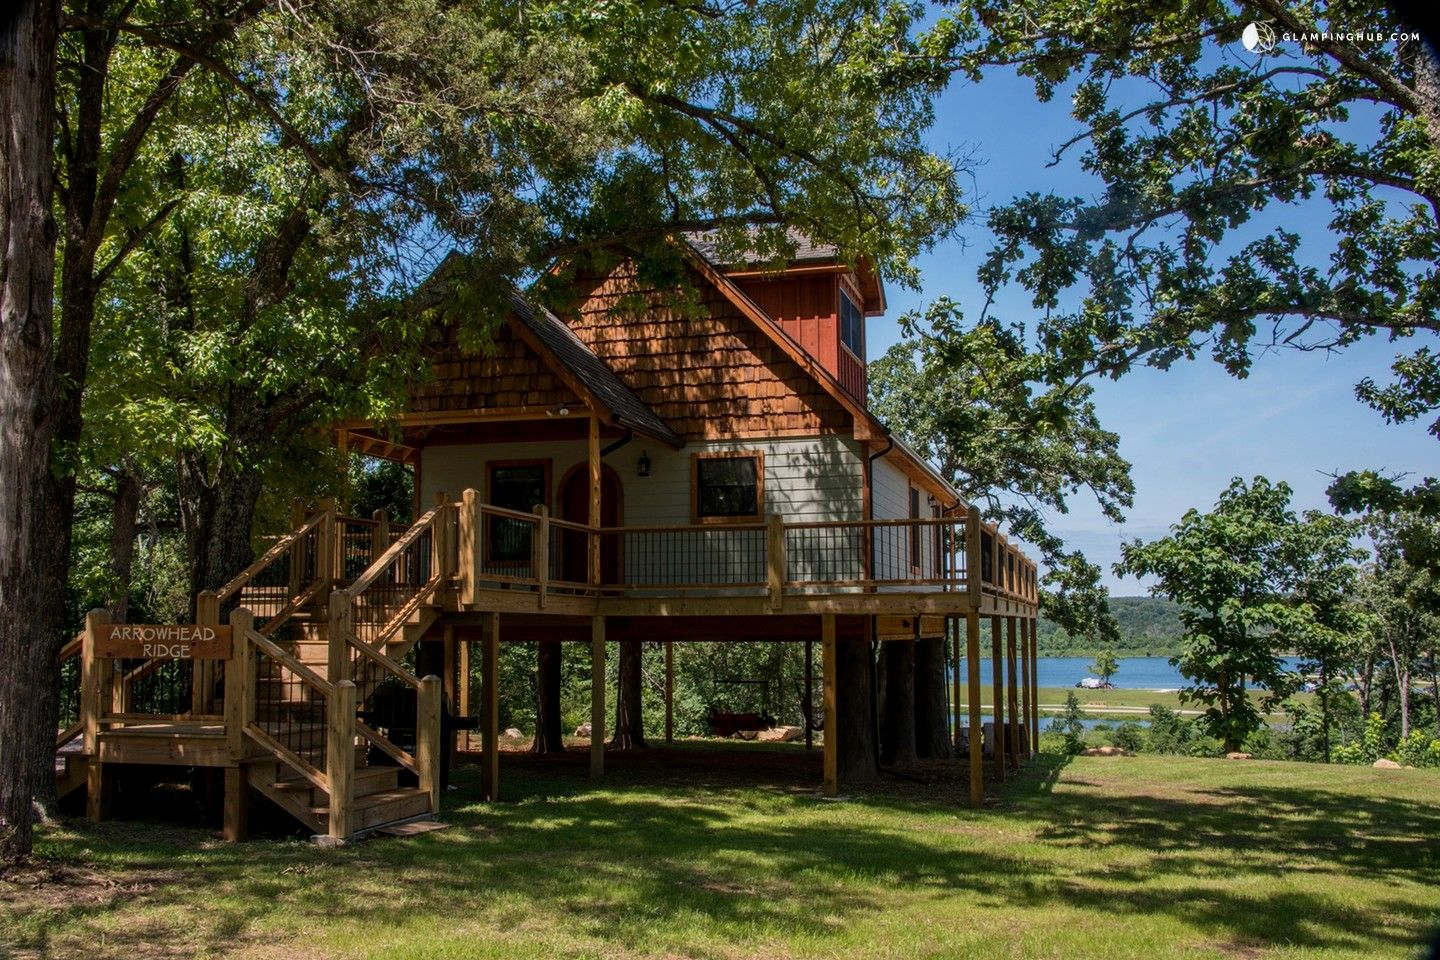 guest pikes luxury cabin in uk arkansas colorado wales near with hot country cabins renovation rentals lodges charm rustic springs log tubs rooms romantic peak